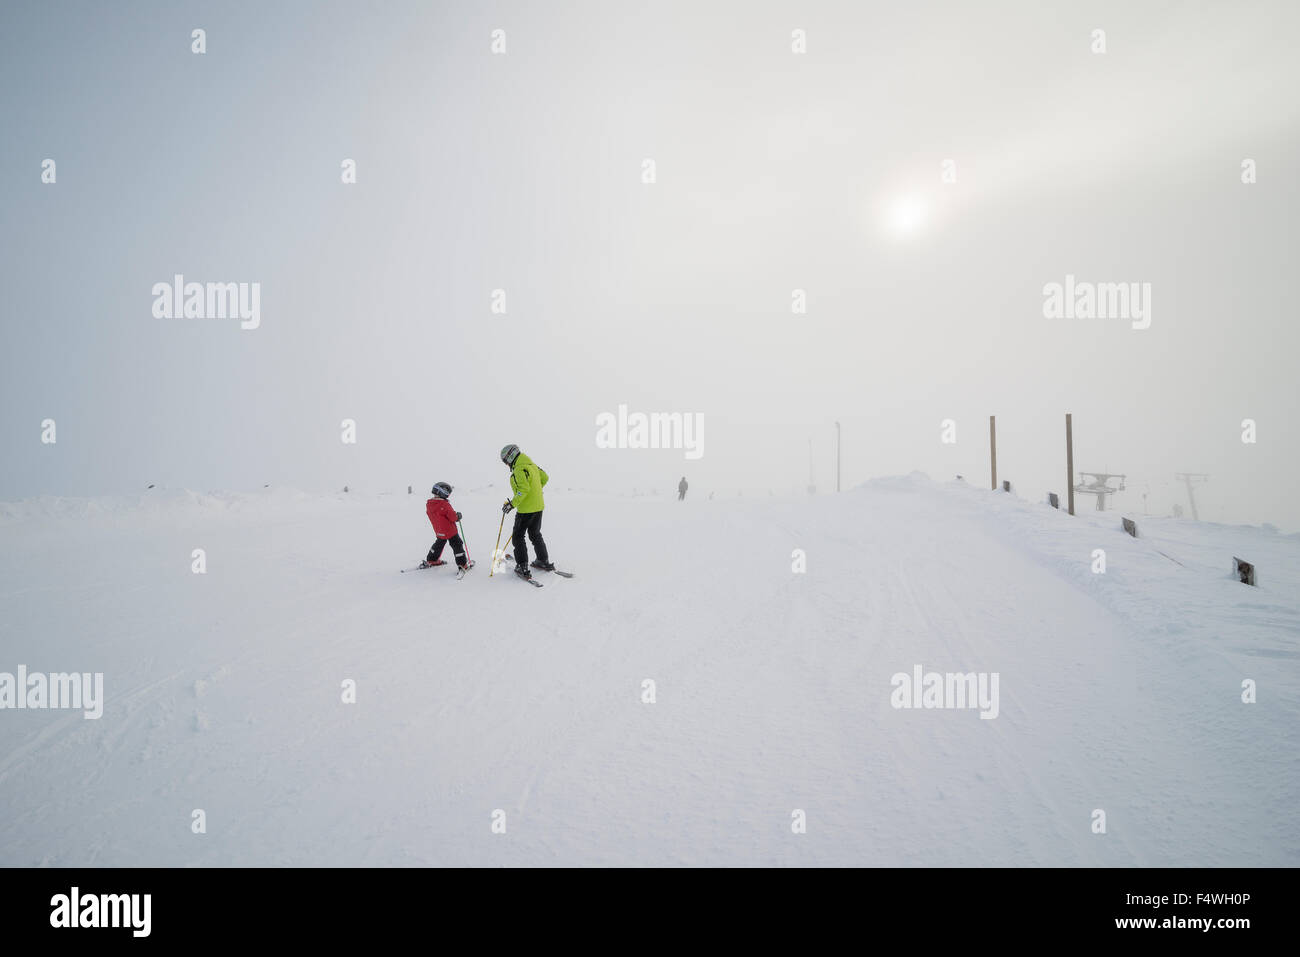 Finland, Lapland, Levi, Grandfather and grandson (6-7) skiing - Stock Image